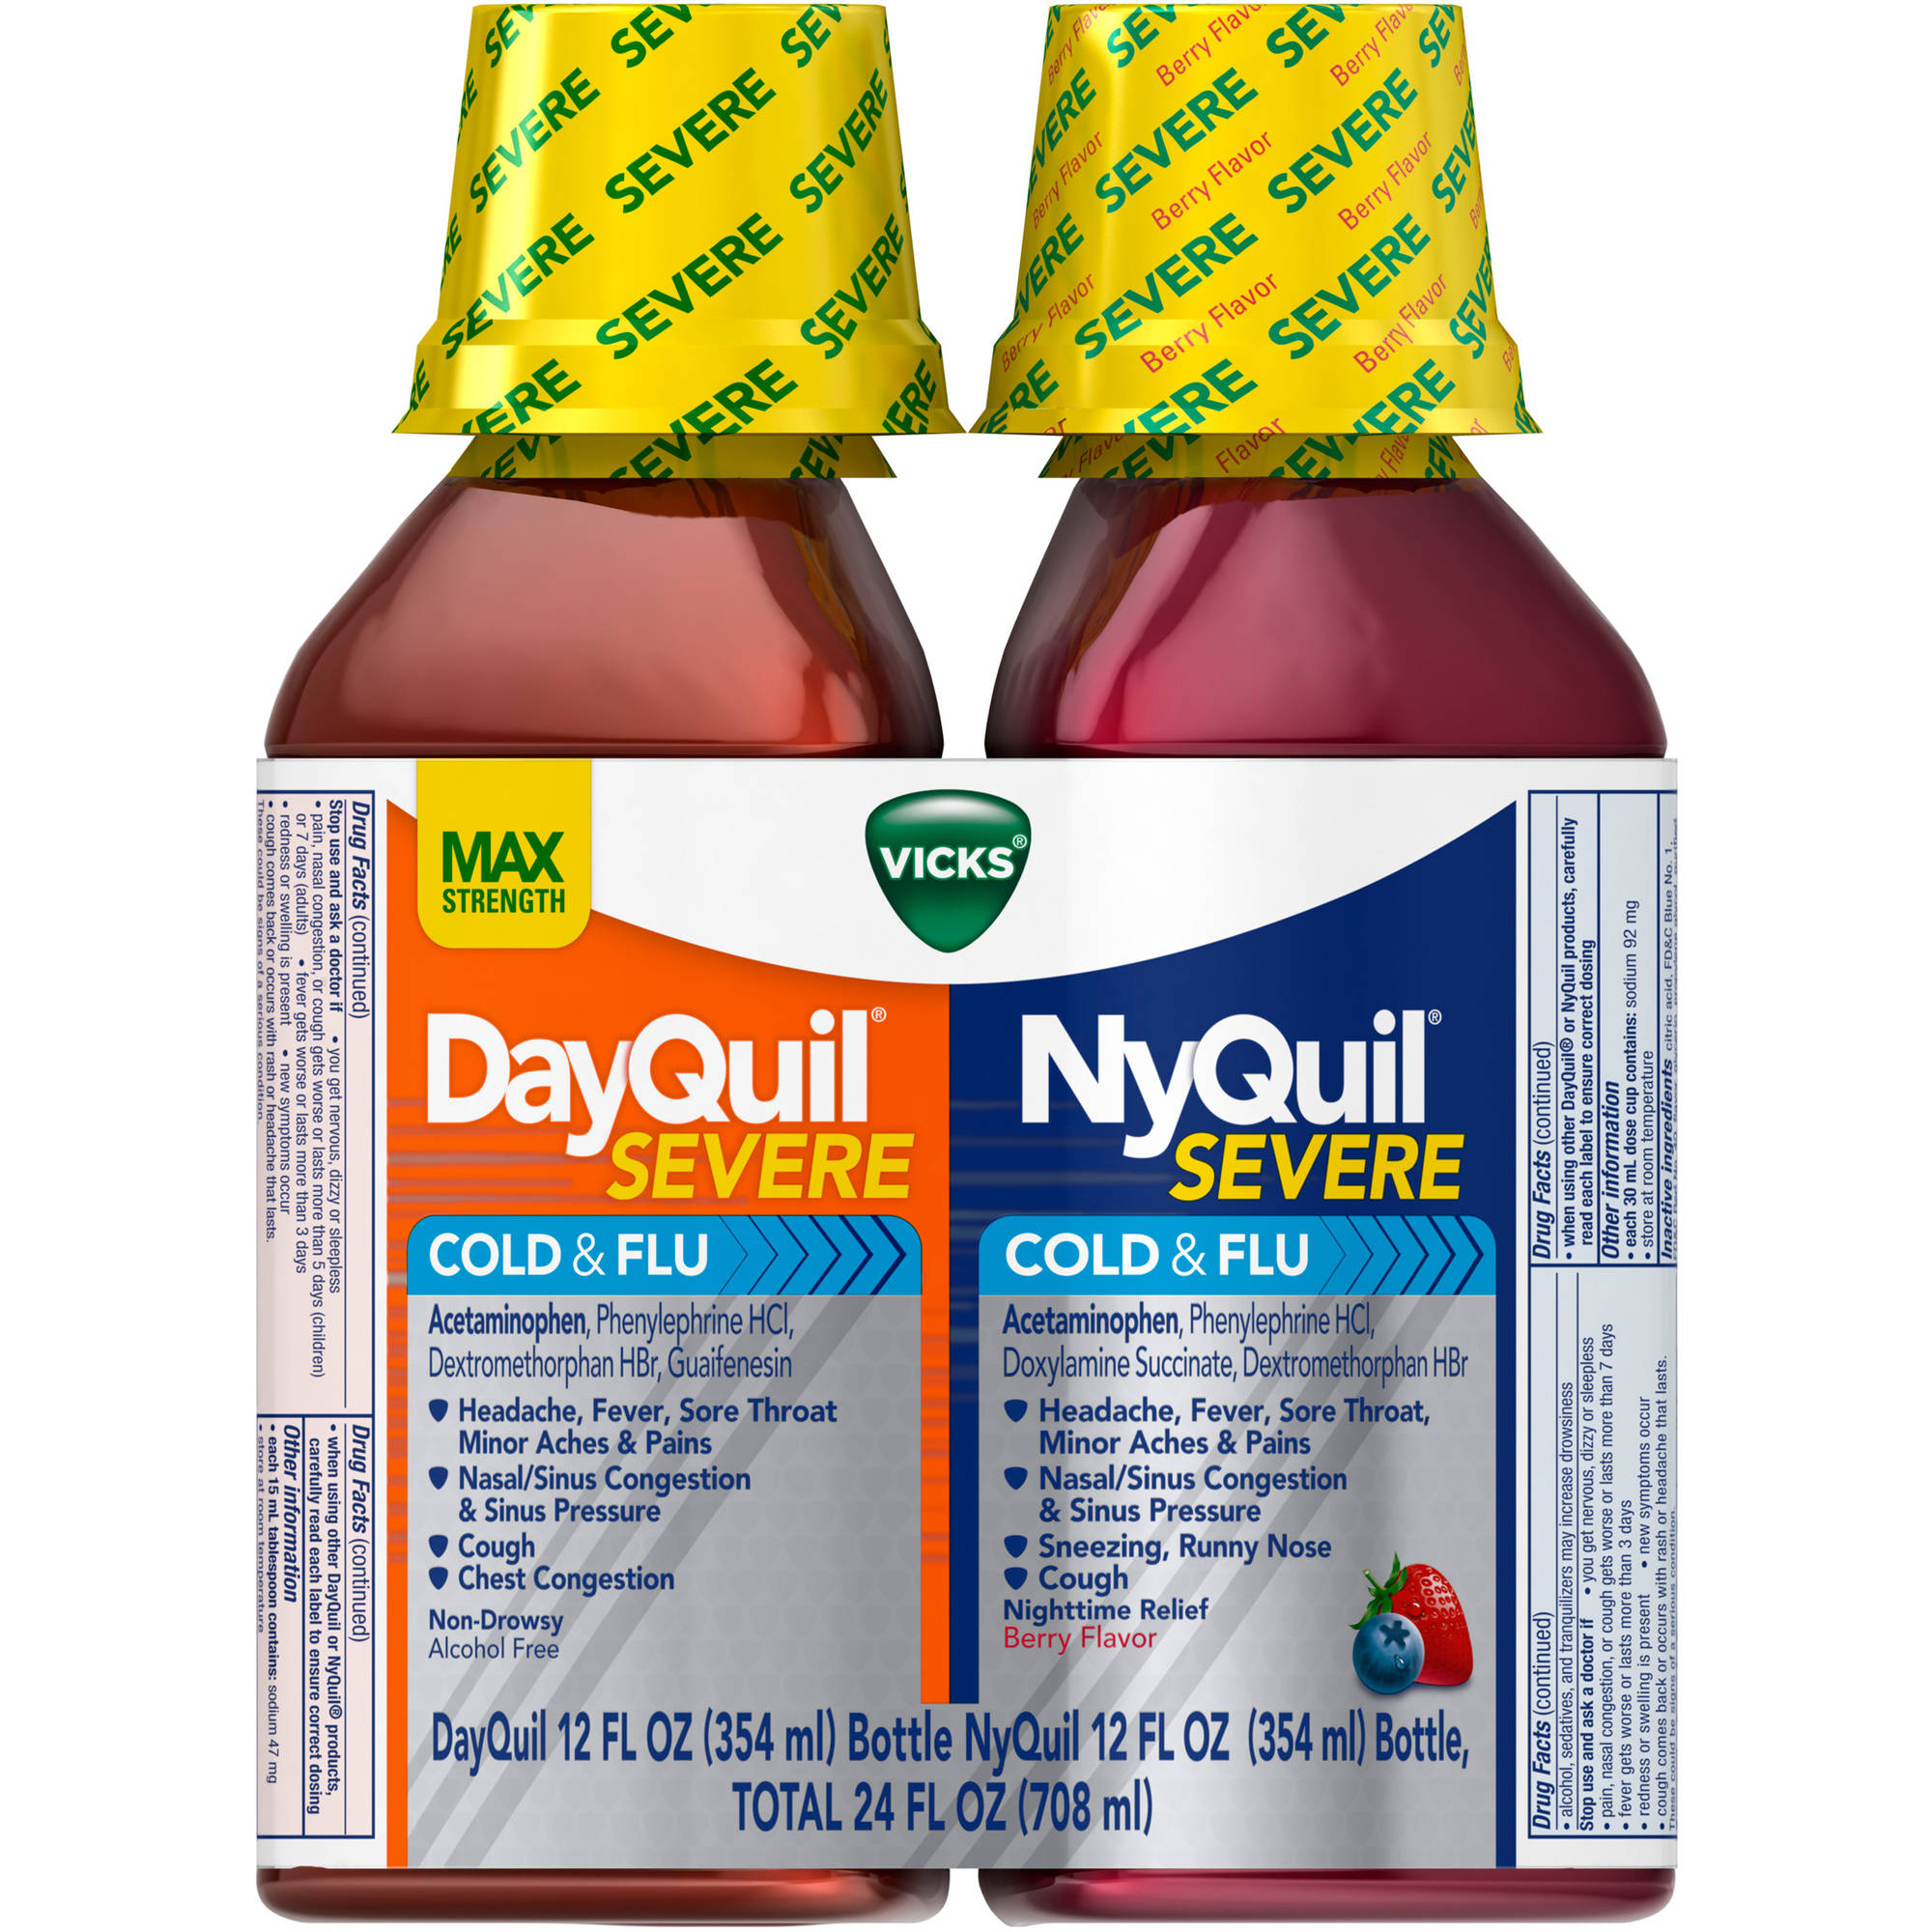 Vicks DayQuil Severe Cold & Flu and NyQuil Severe Cold & Flu Nighttime Relief Liquid Cold Medicine, 12 fl oz, 2 count